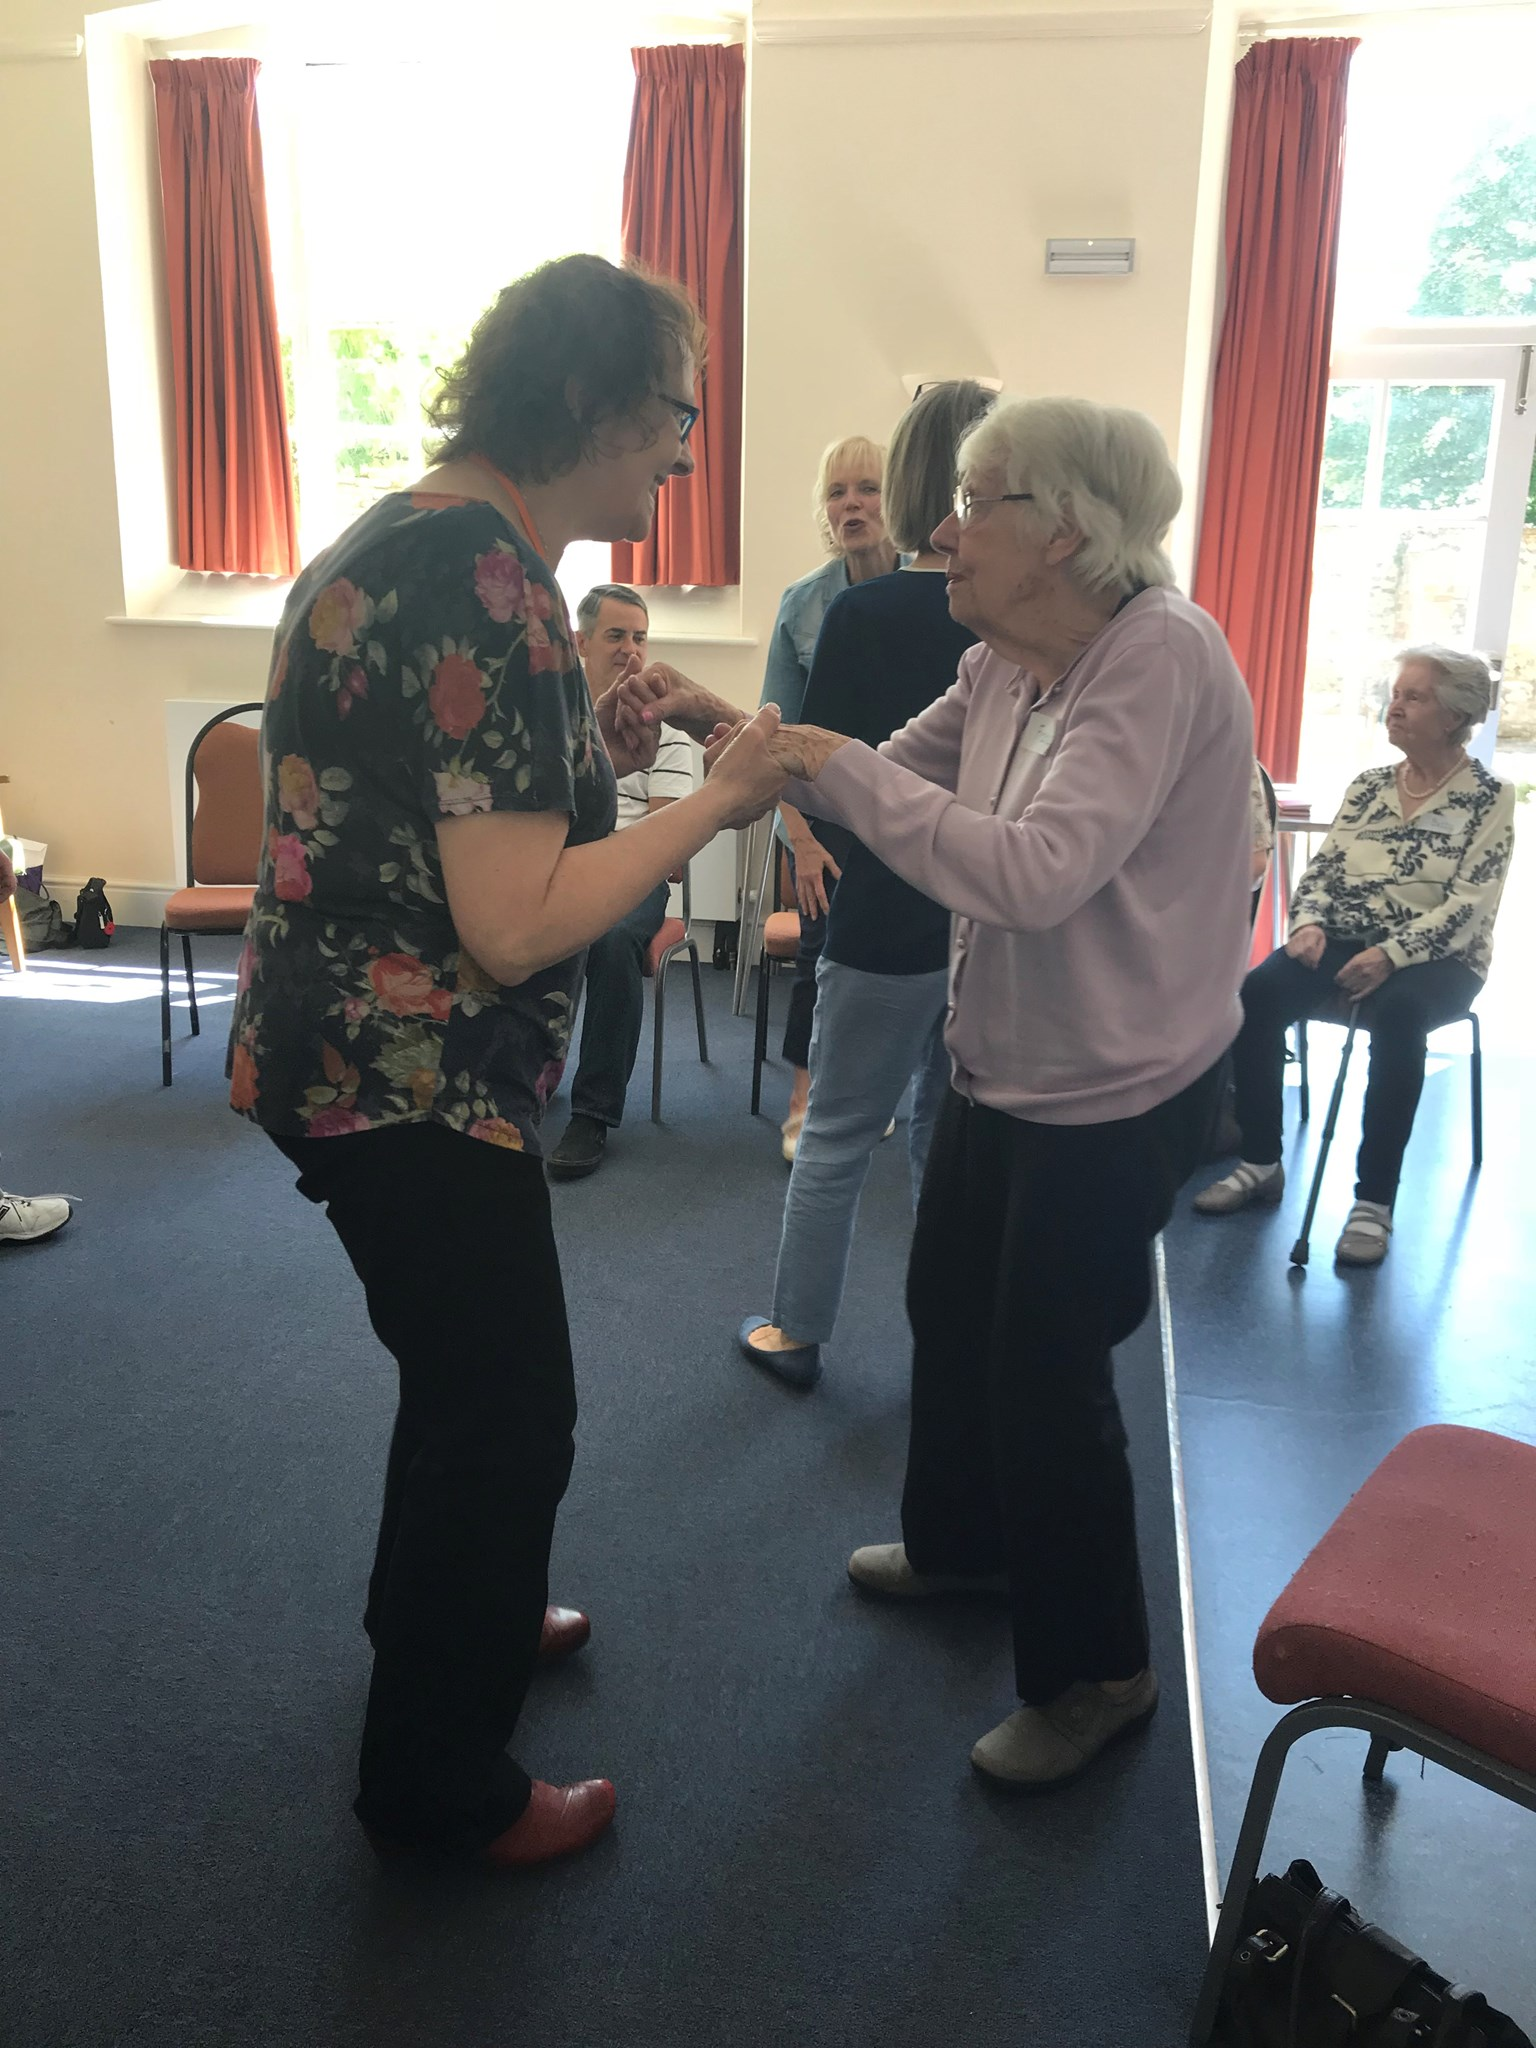 Enjoying a dance at lights up group in Witney on 11/6/2018